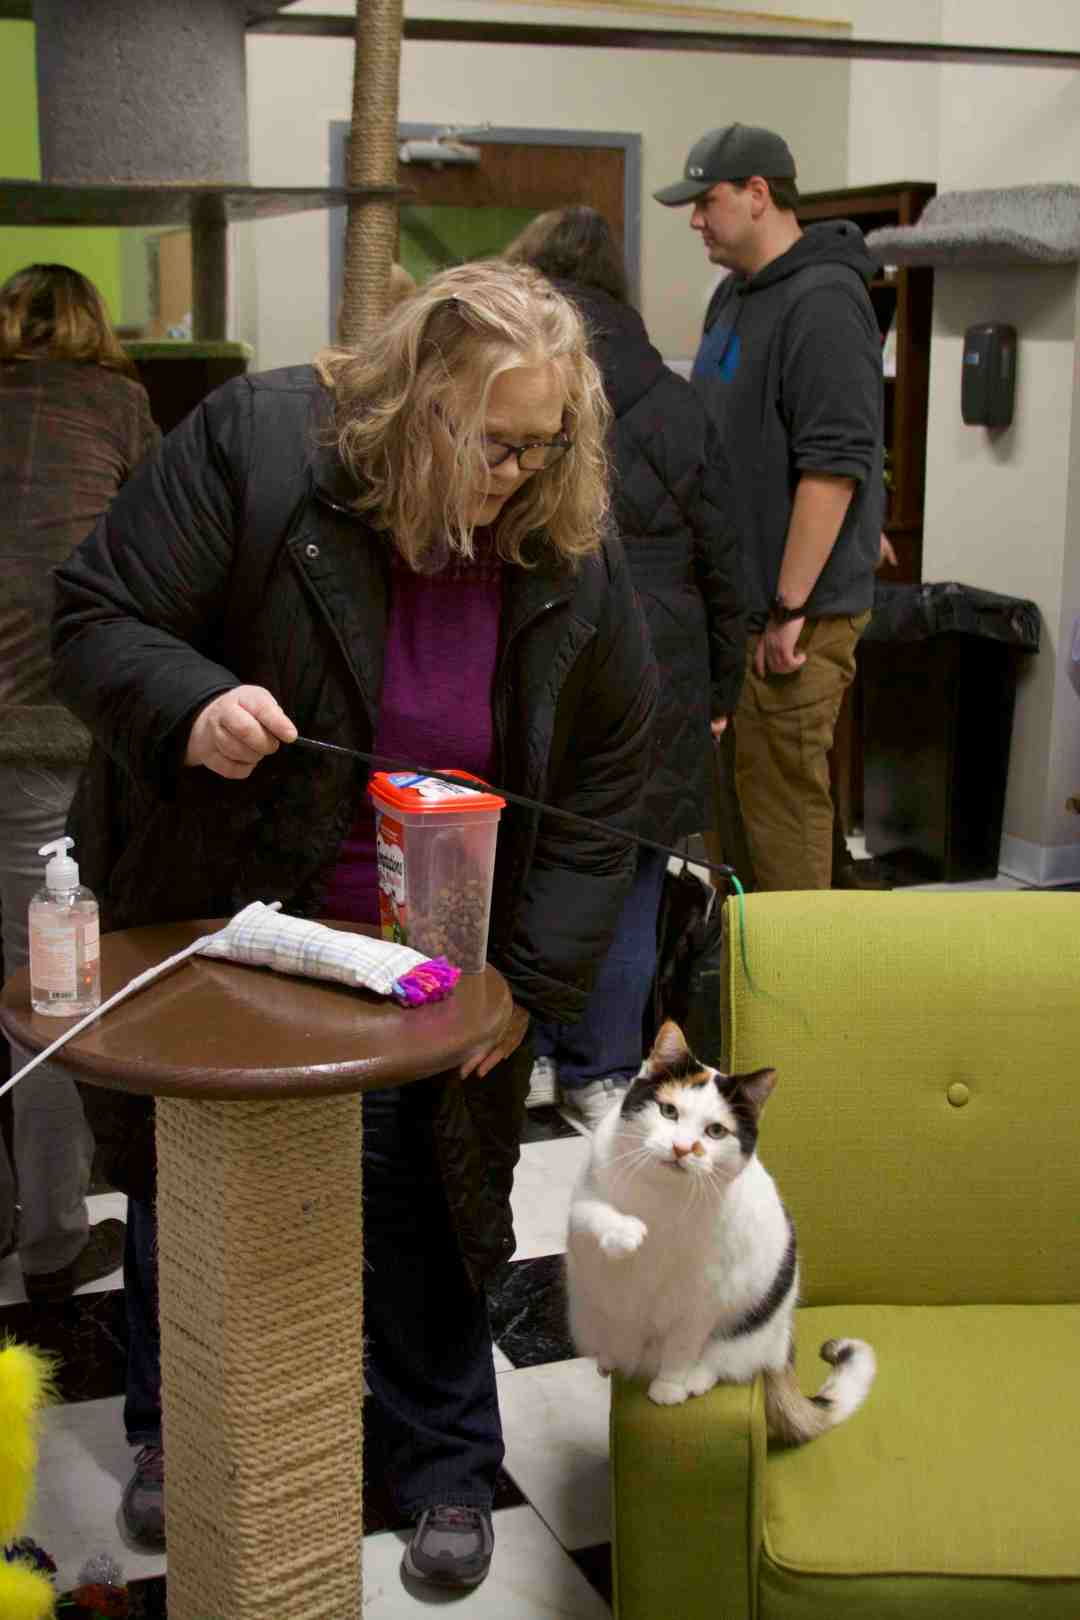 A Playful Cat at The Cafe Meow